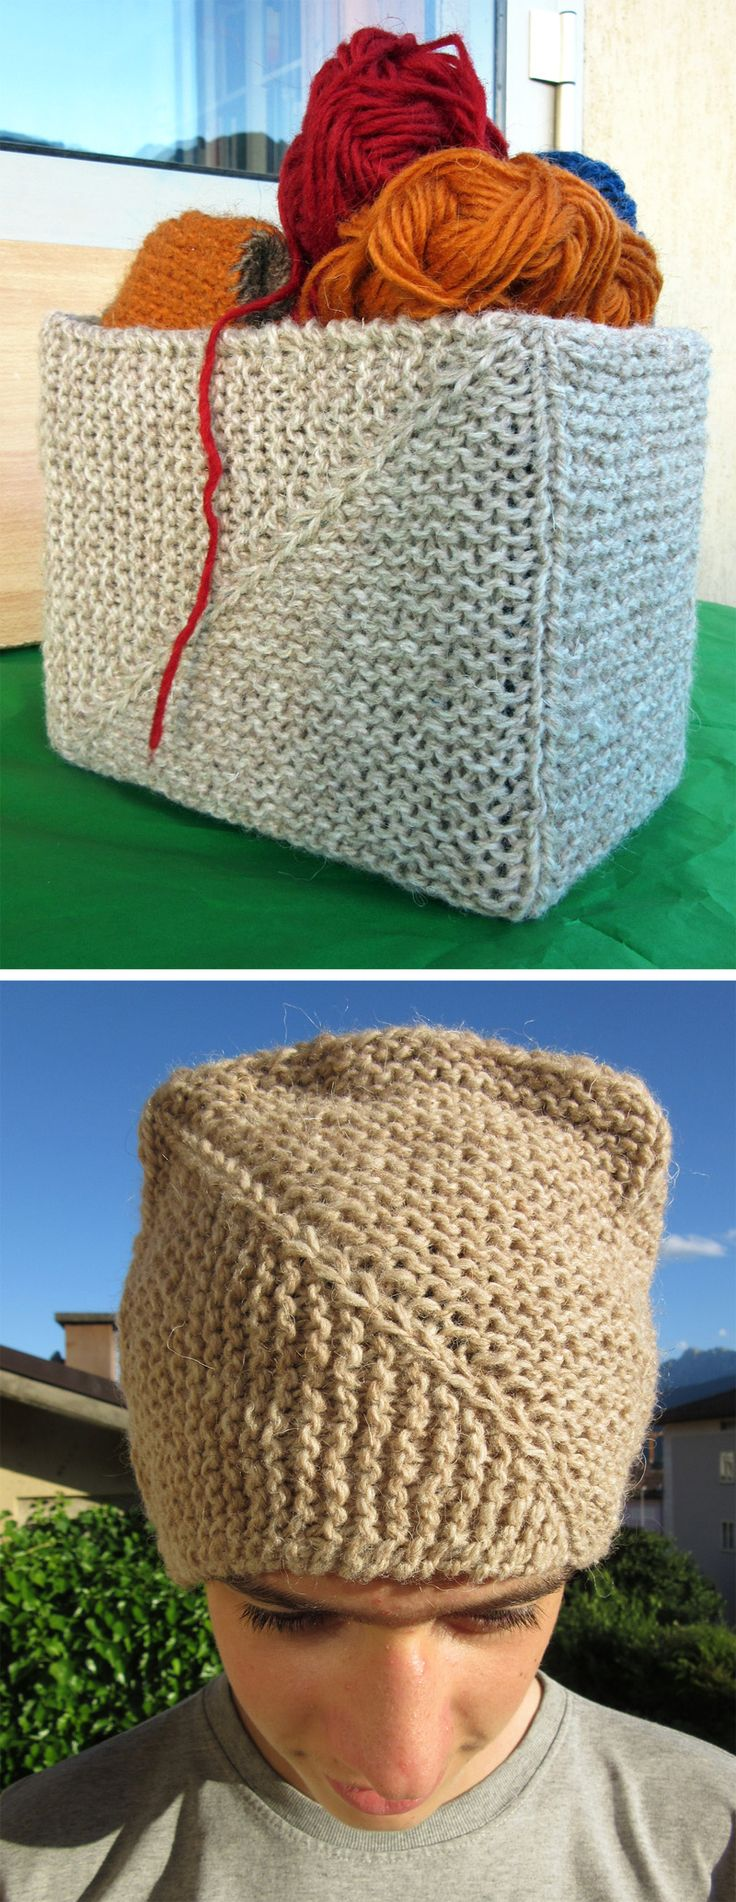 Free Knitting Pattern for Gennaio Basket / Hat - Here's a fun multi-purpose project for a mitered container inspired by origami. This versatile project can be used as storage if reinforced with cardboard or even worn as a hat. Dimensions: about cm 20.5 x 12 x 16.5h but easy to adjust. Designed by Alice Liotto. Available in English and Italian.